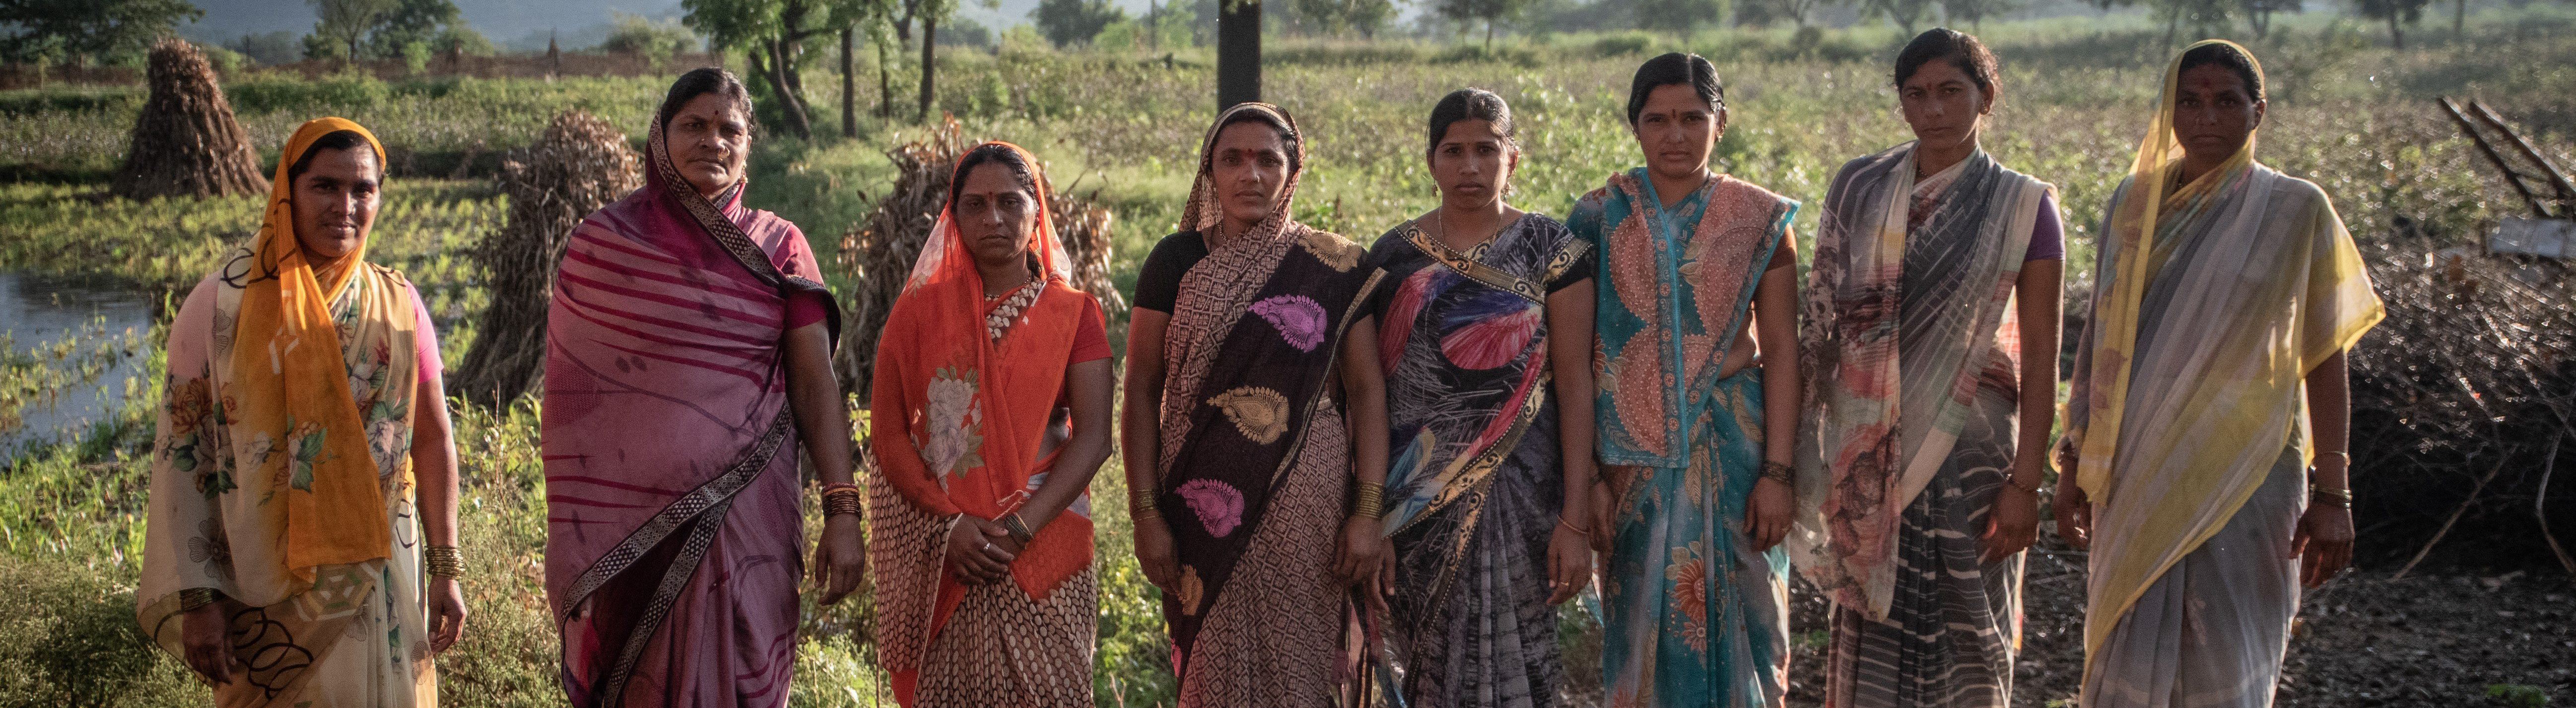 India - A group of seven women from Soni Moha village, Beed District. All of them are sugarcane cutters and underwent a hysterectomy in a hospital from the private health sector. none of them received a medical report after the surgery.